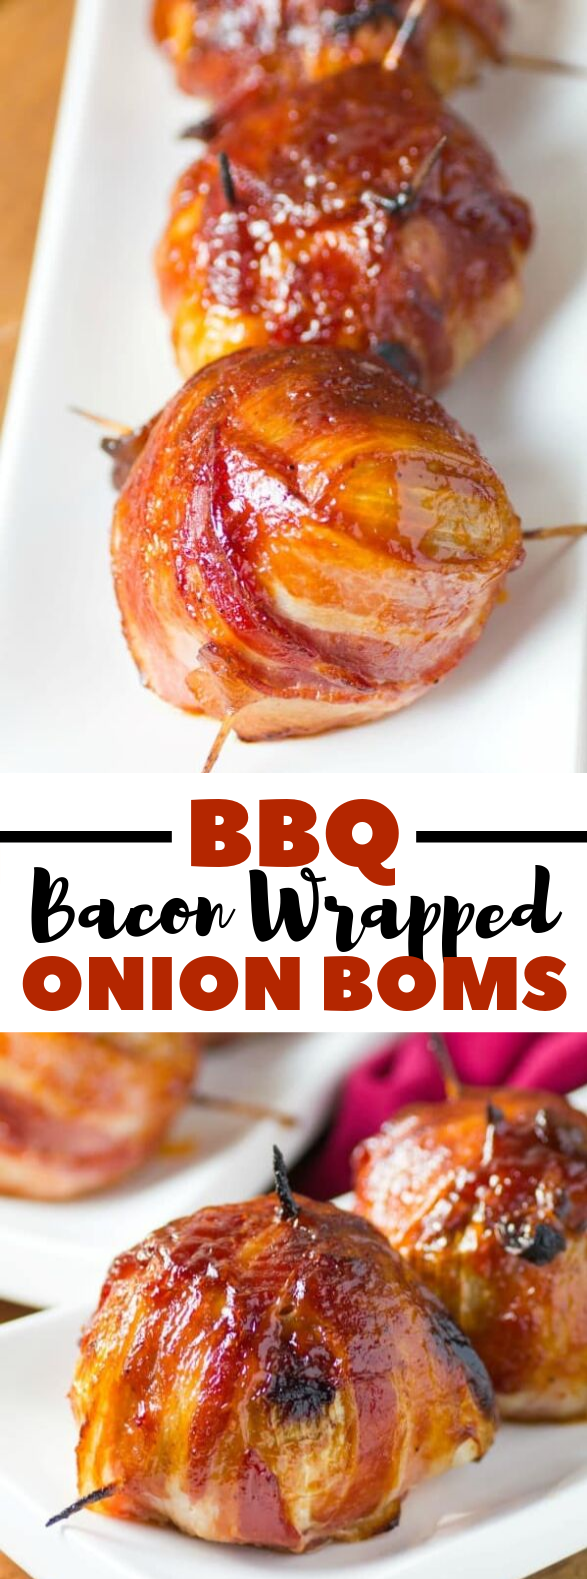 BBQ BACON WRAPPED ONION BOMBS #dinner #gameday